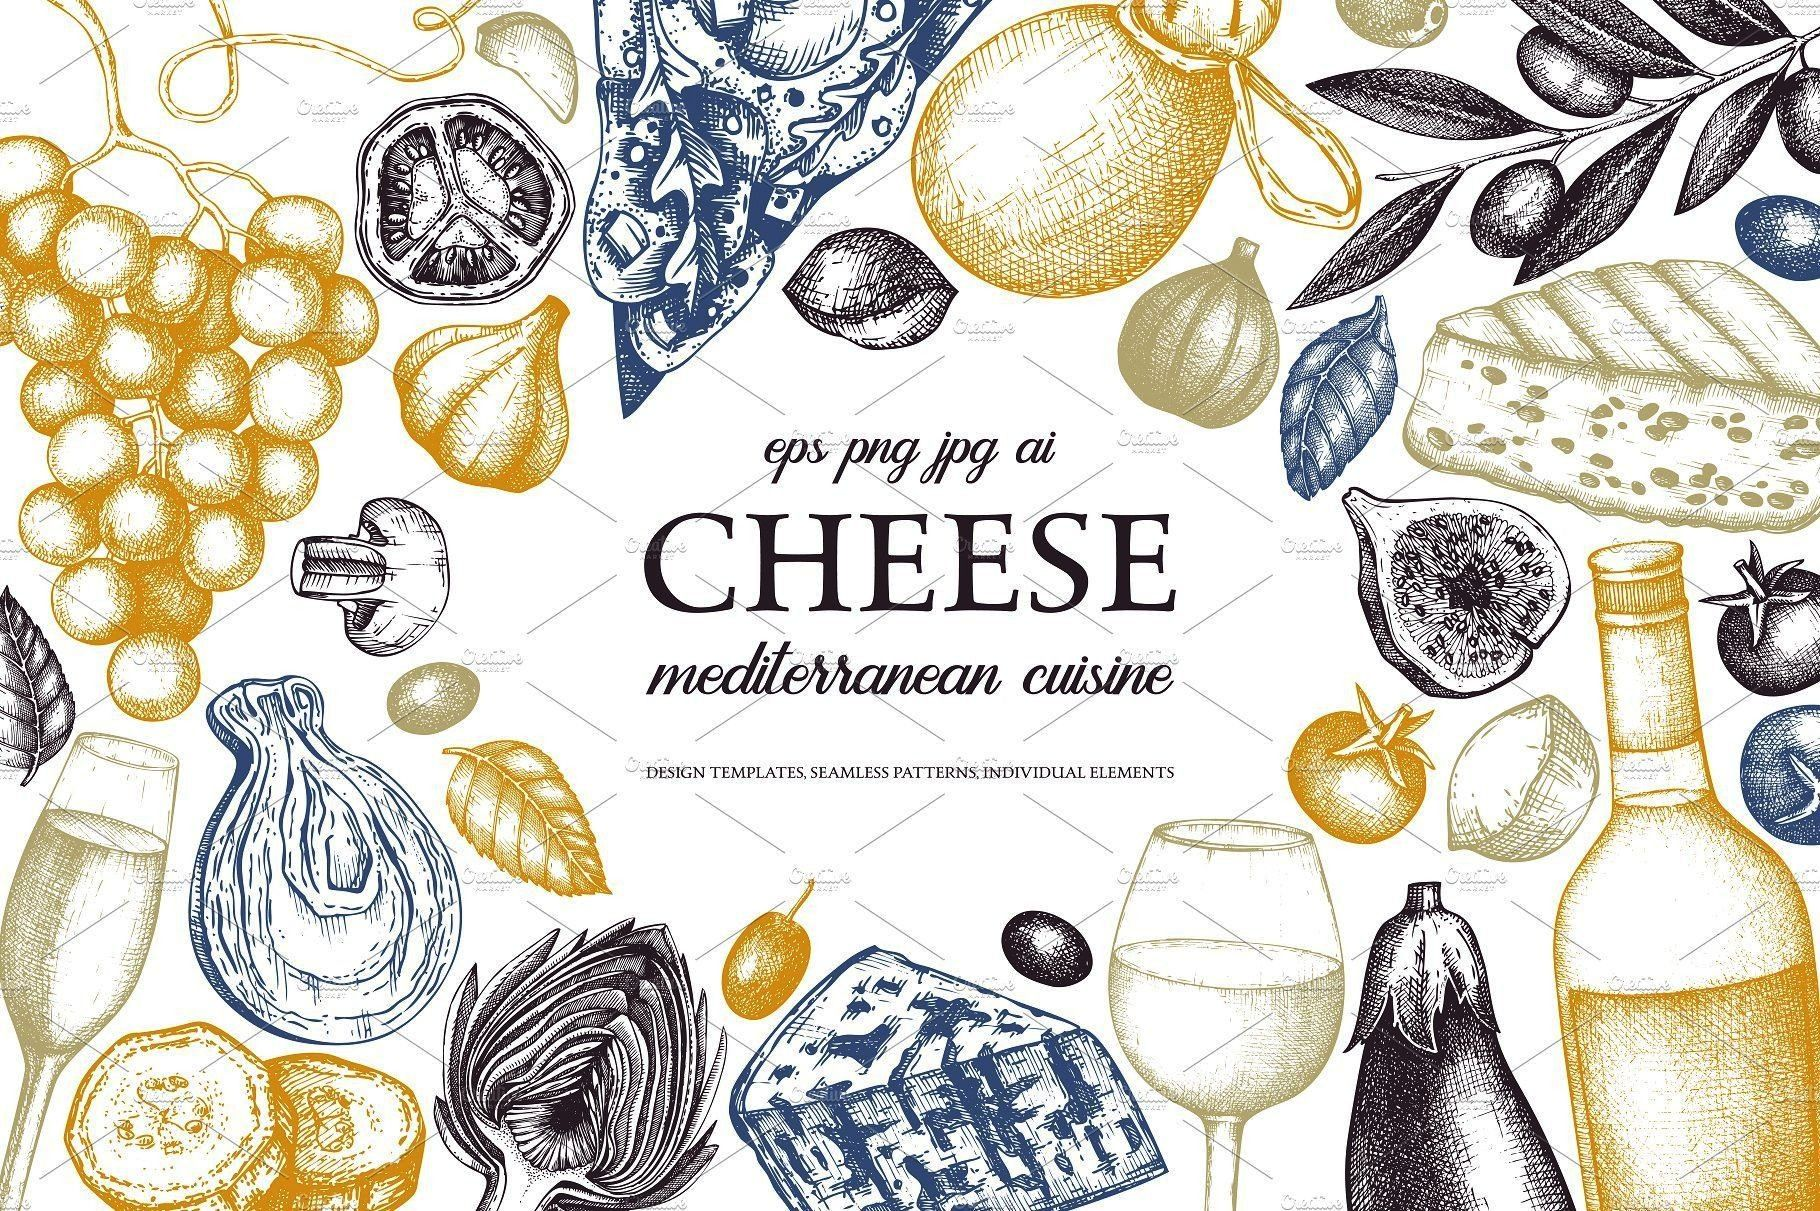 Drawn Cheese IllustrationsHand Drawn Cheese Illustrations  Watercolor French Cheeses Clipart - Fren